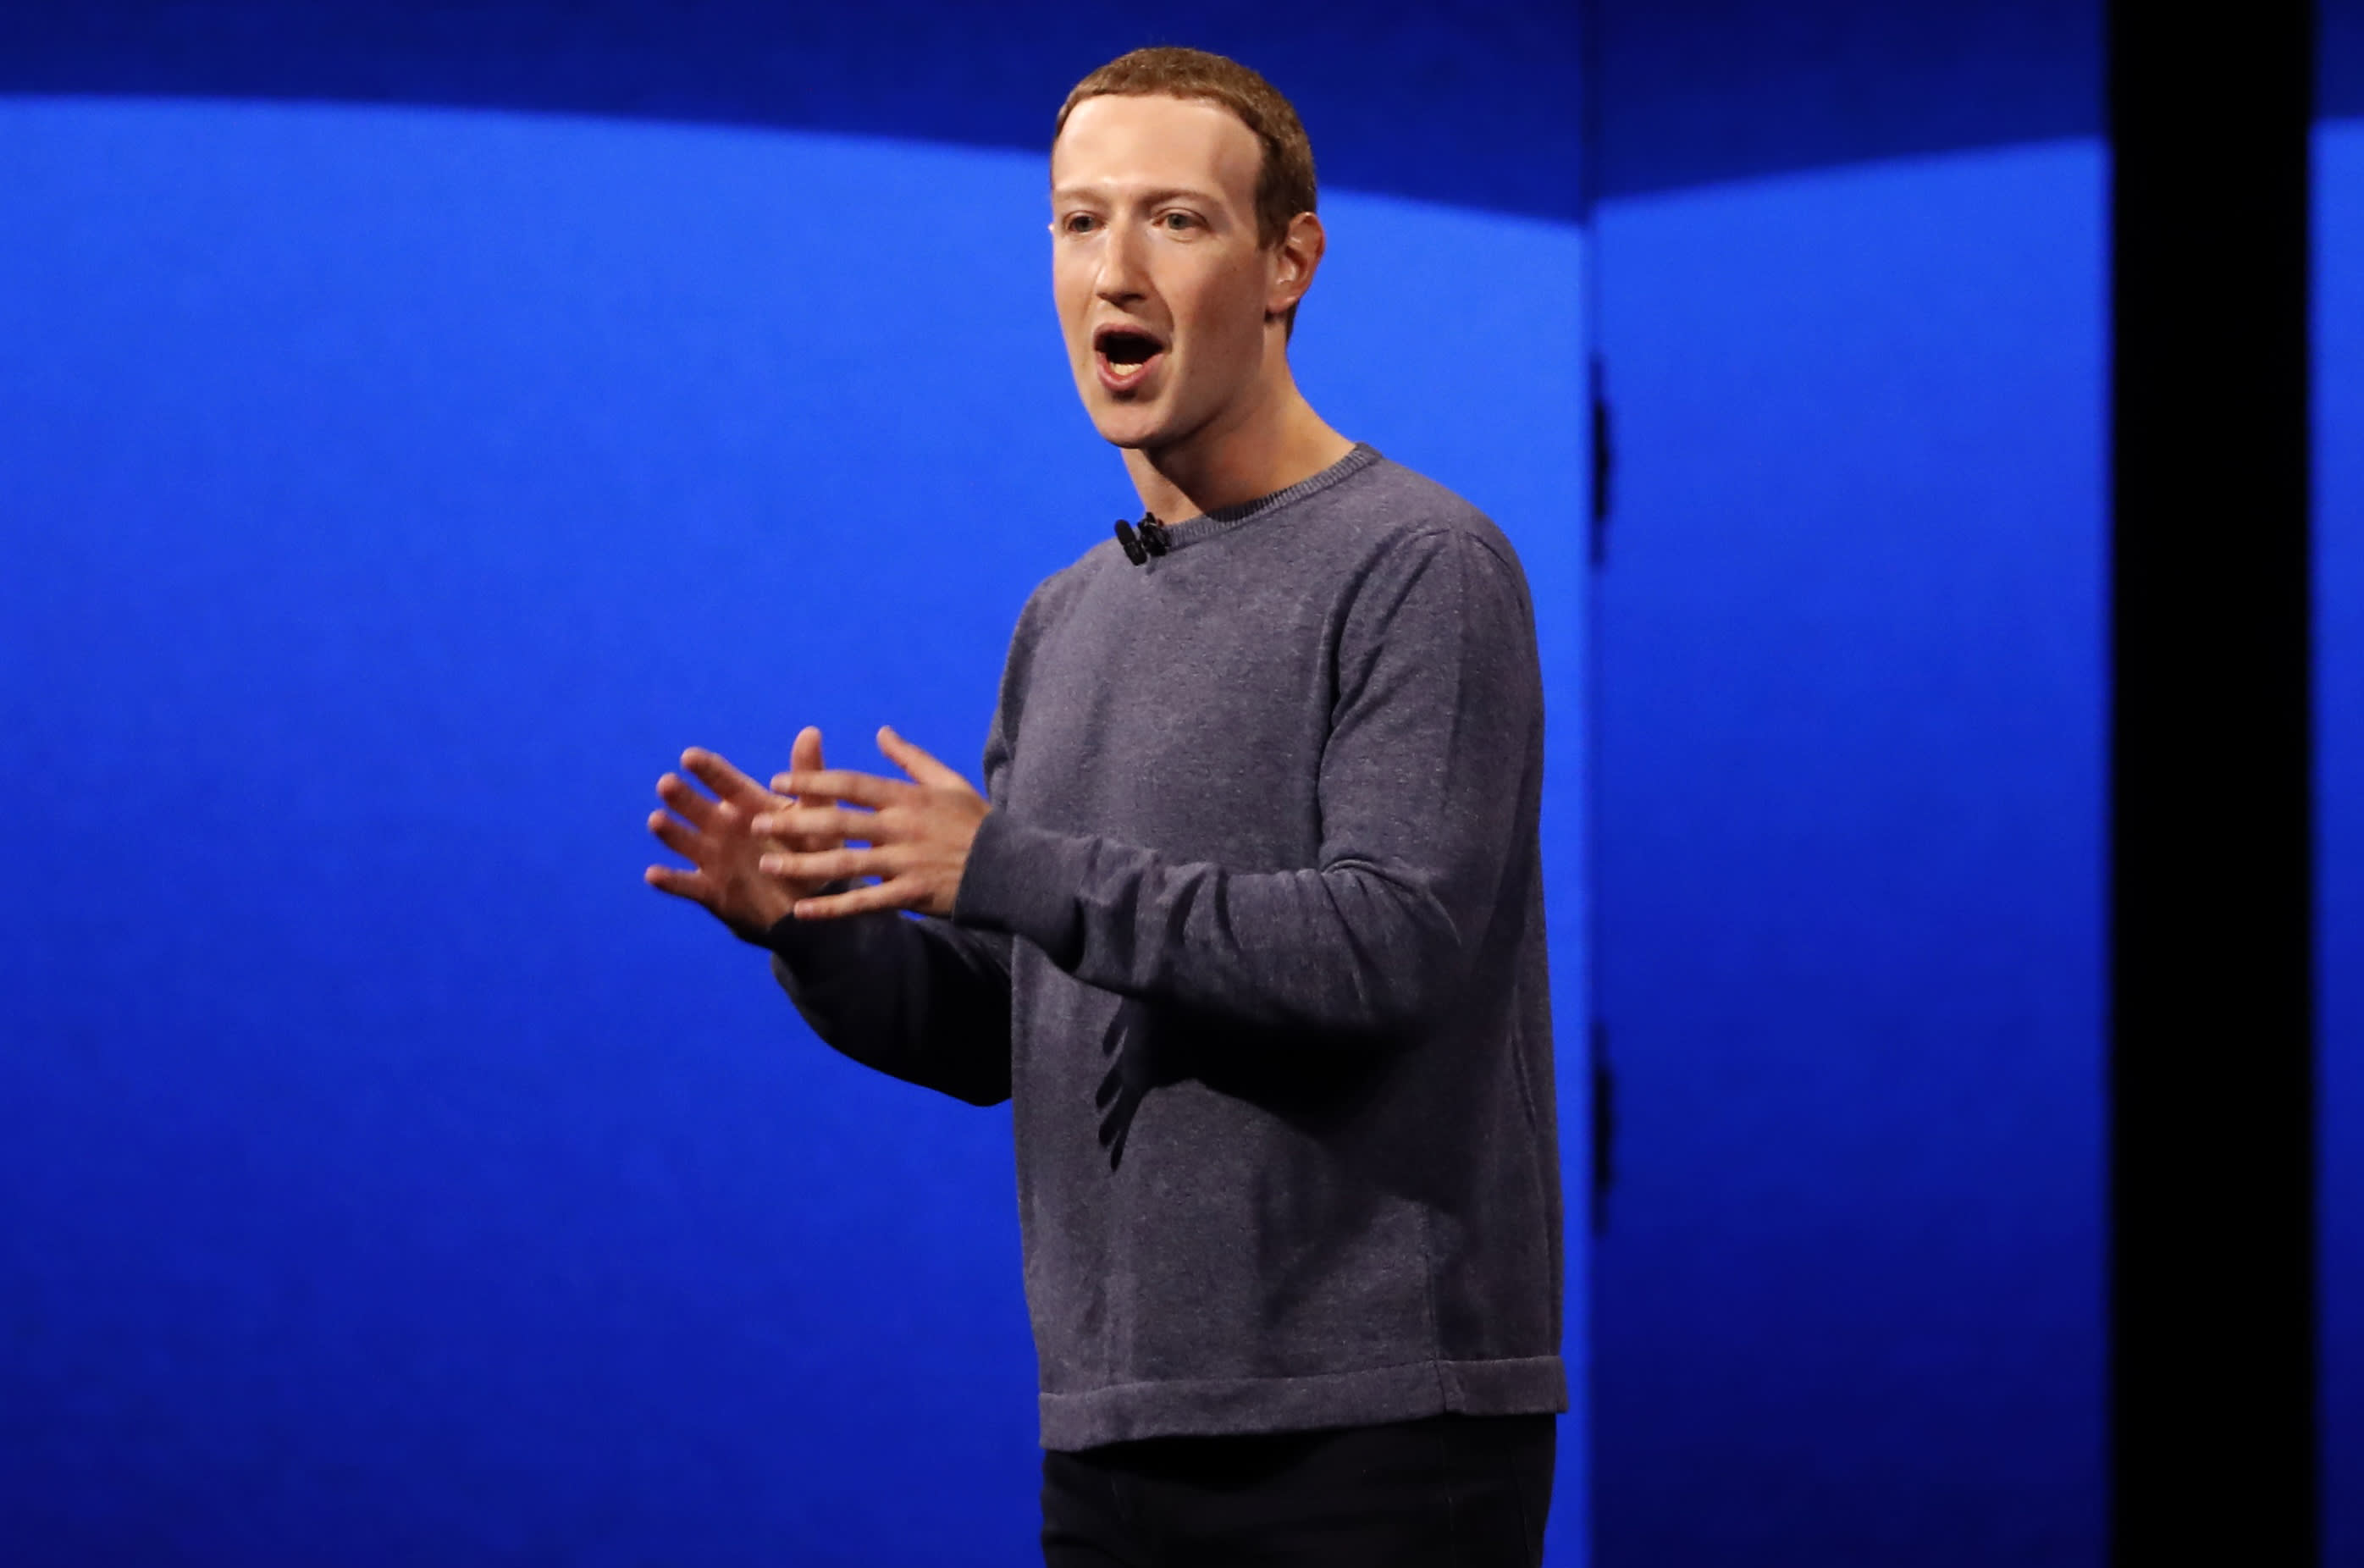 Zuckerberg: Facebook is working on products you'll control with your voice